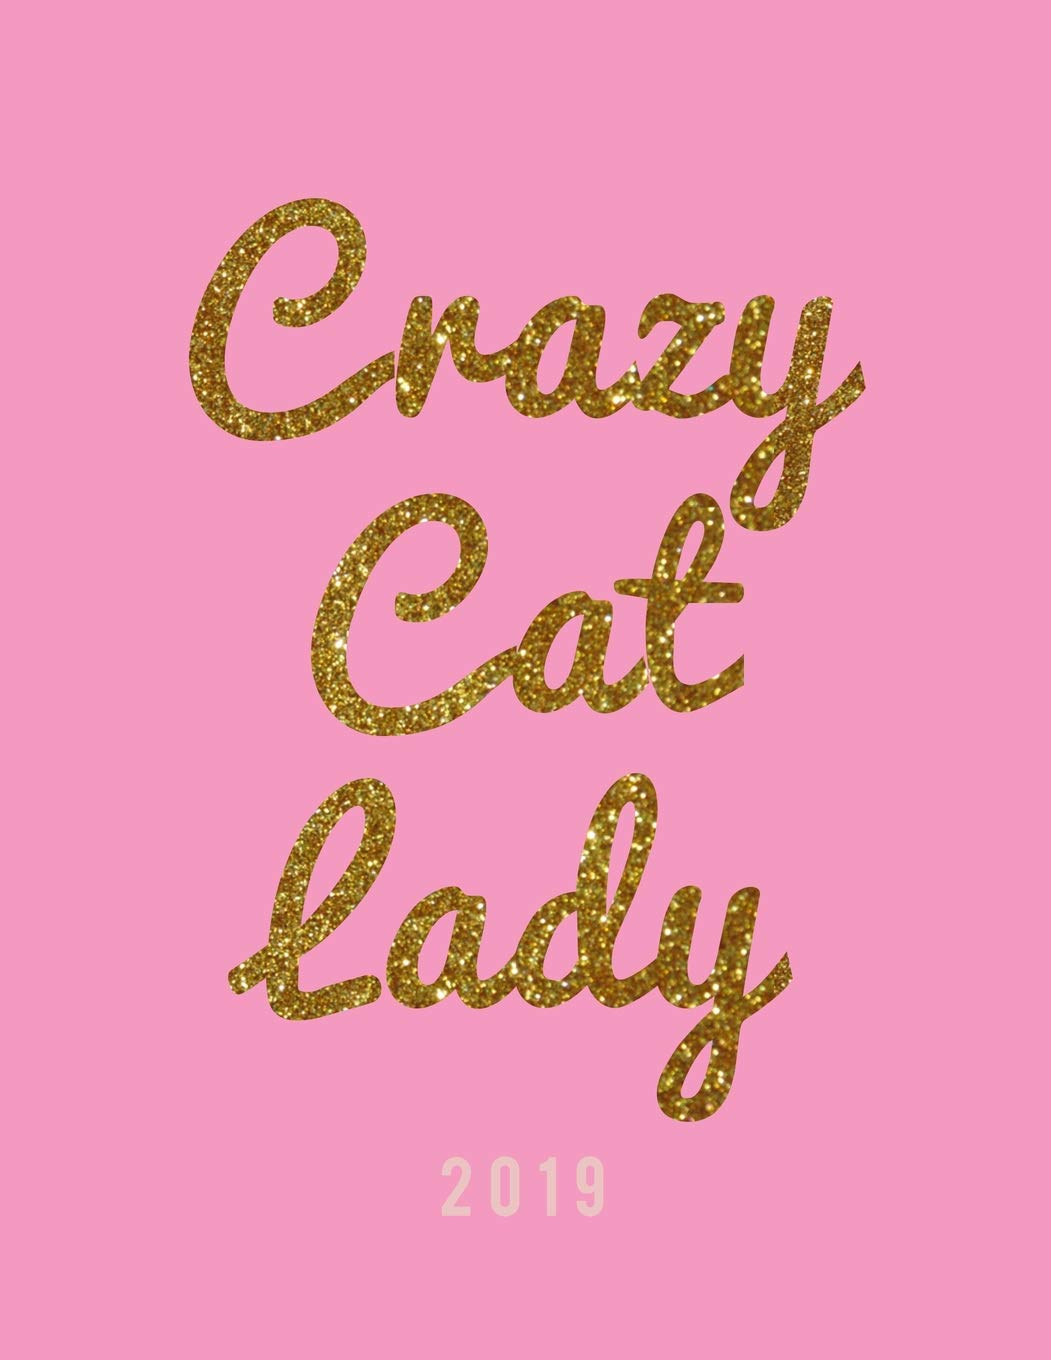 Crazy Cat Lady 2019: Weekly Daily Monthly Organizer for Cat ...